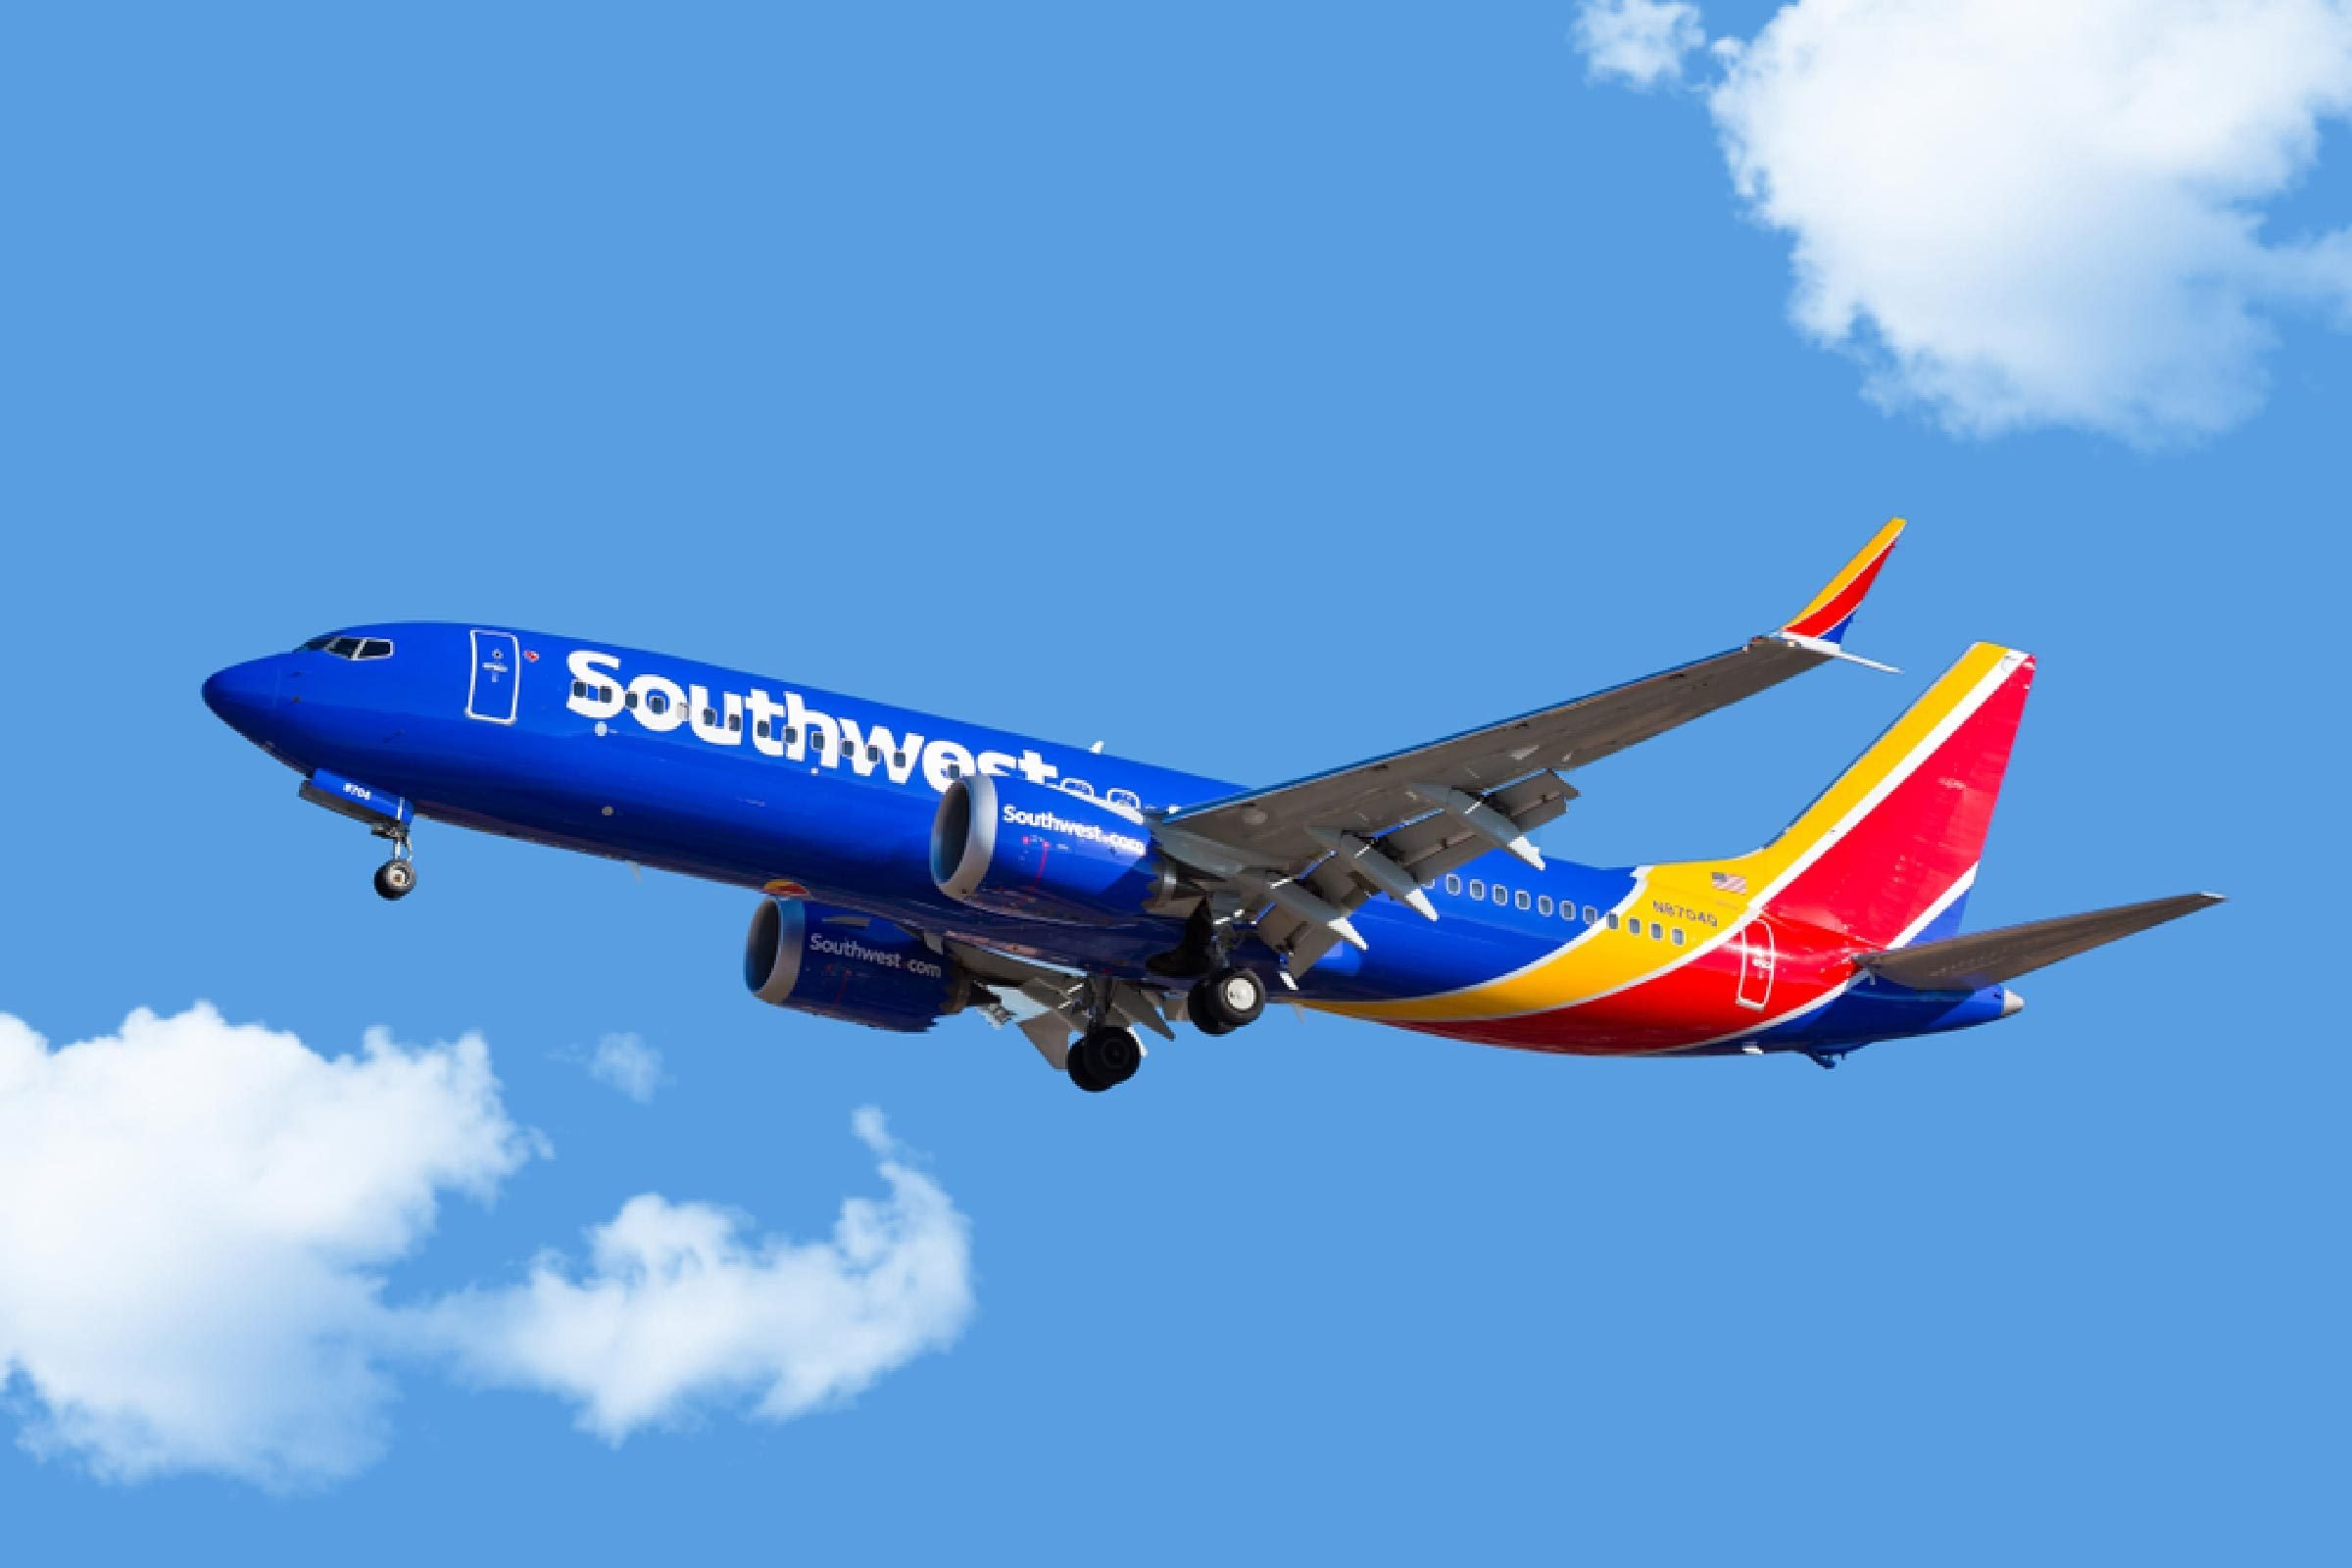 Southwest Airlines 737-800 MAX aircraft on final approach at Midway Airport.